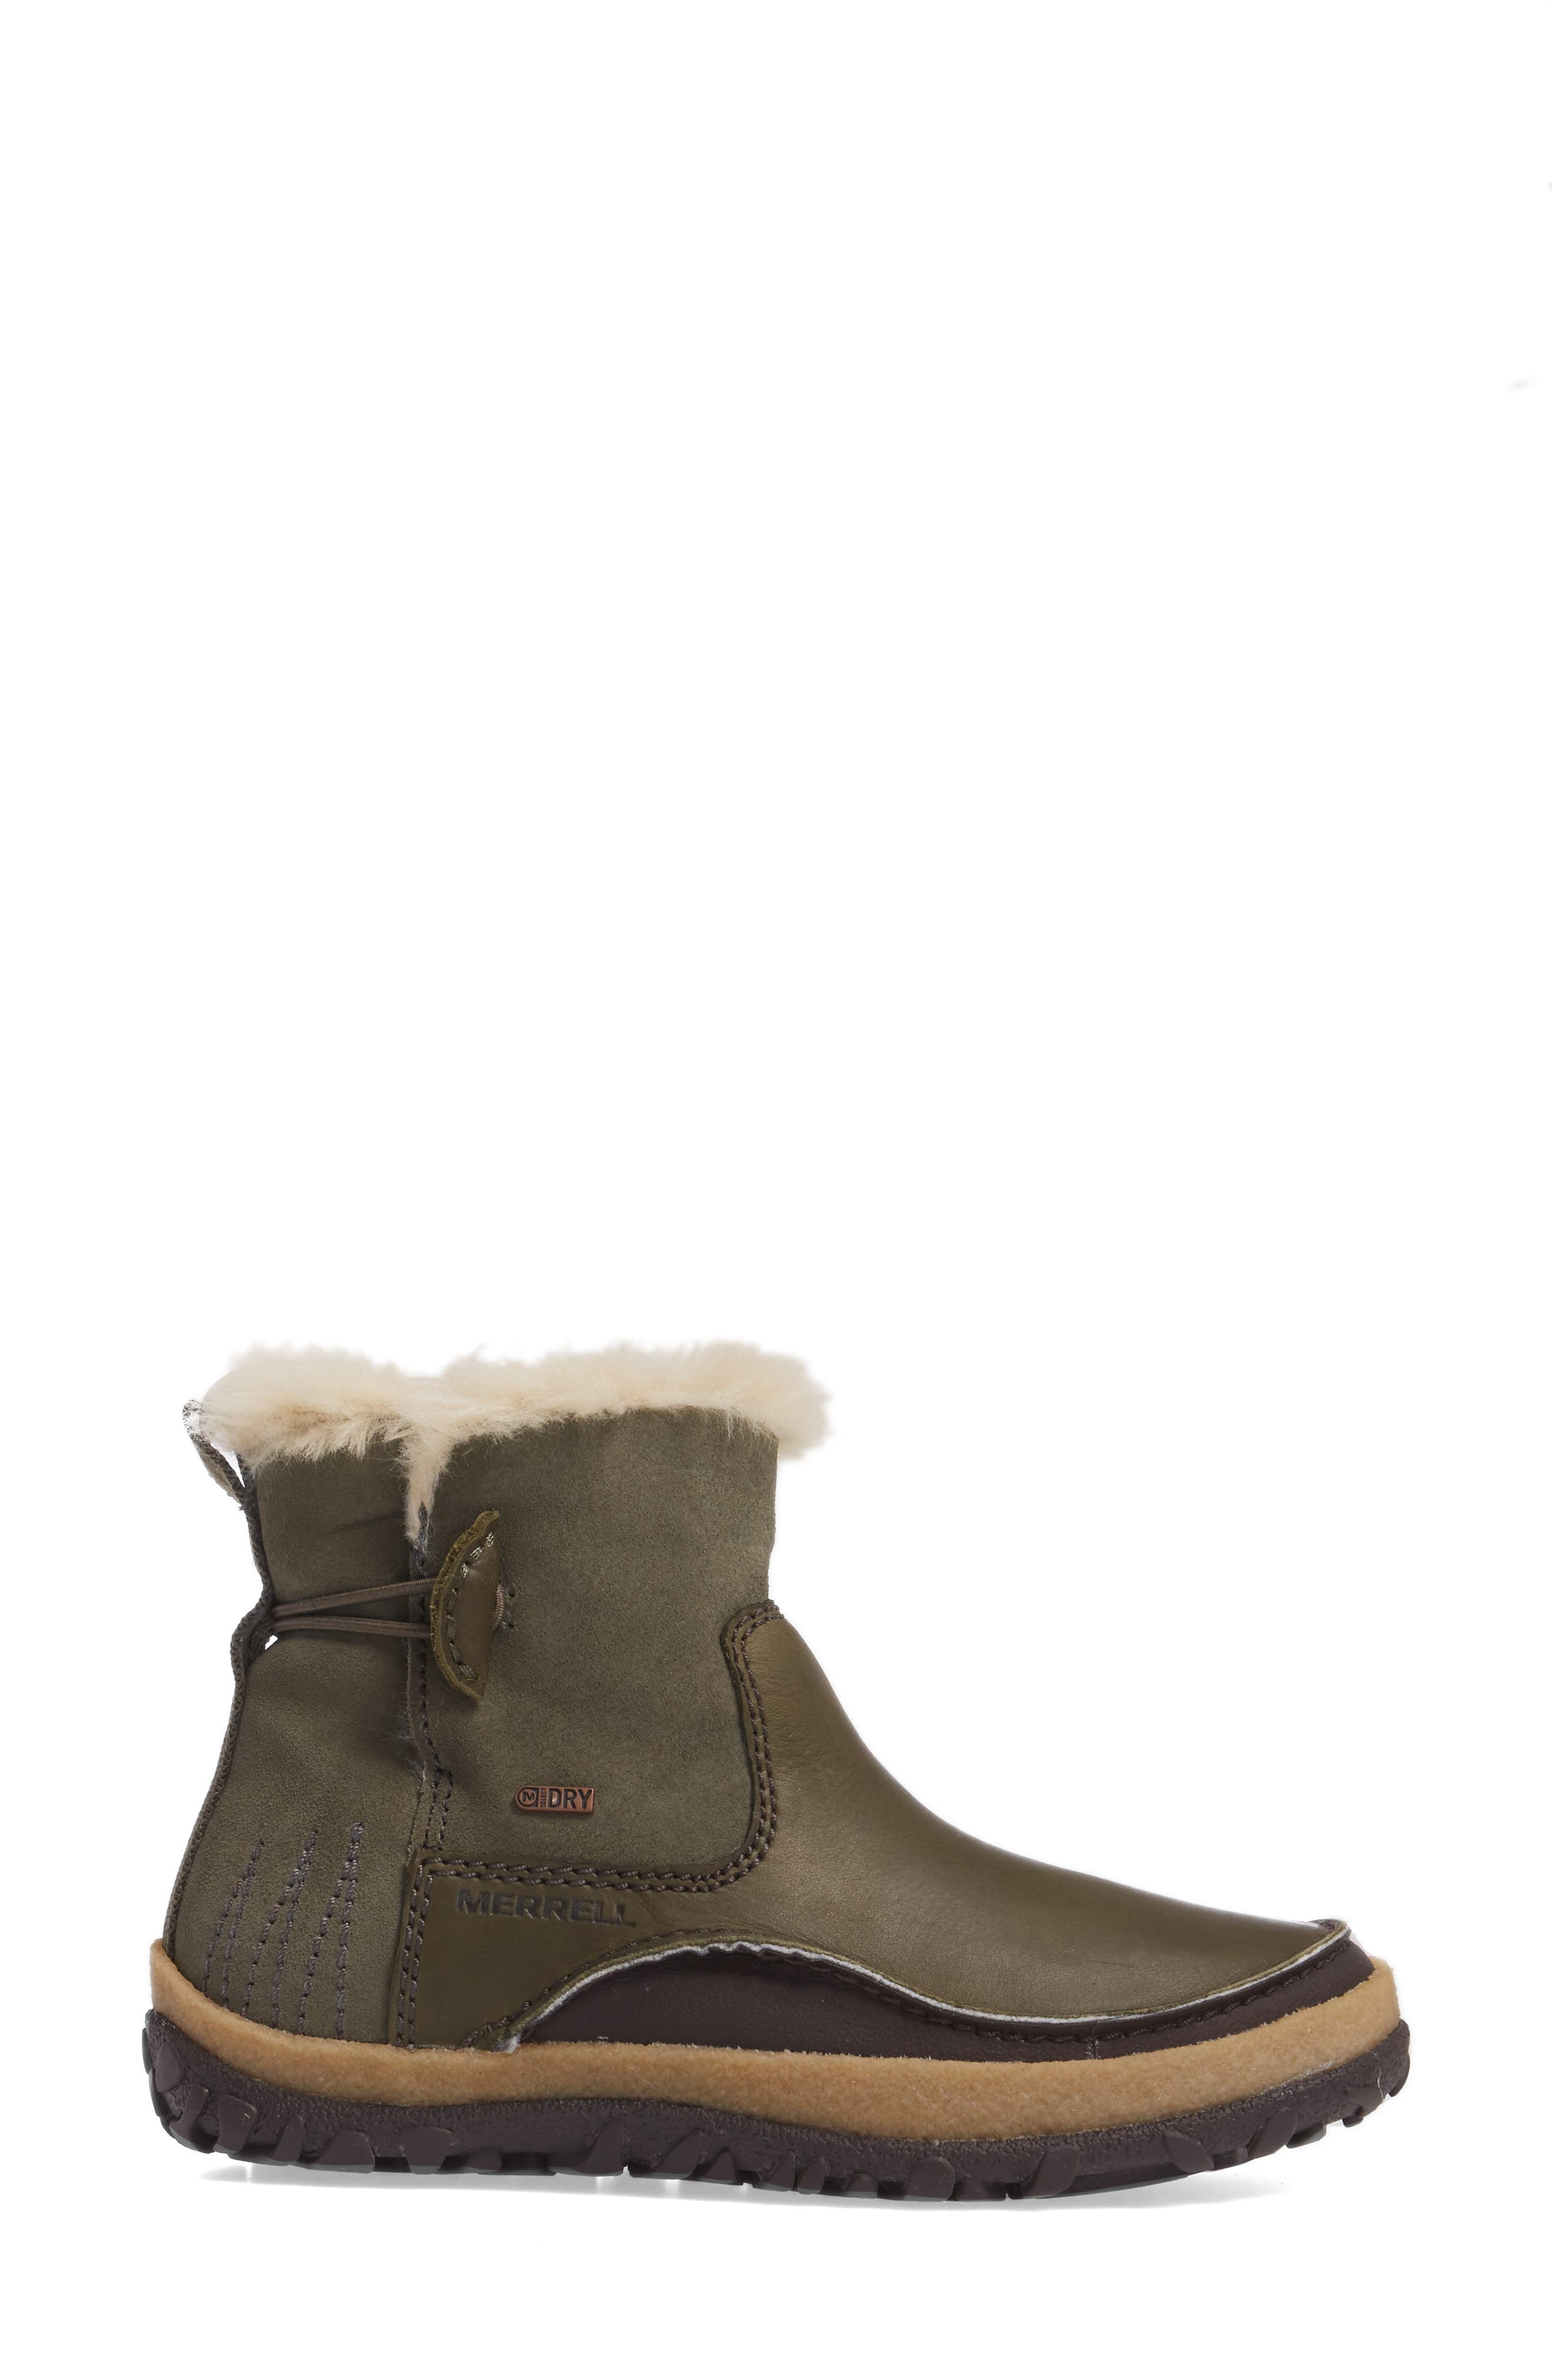 Tremblant Pull-On Polar Waterproof Bootie,                             Alternate thumbnail 12, color,